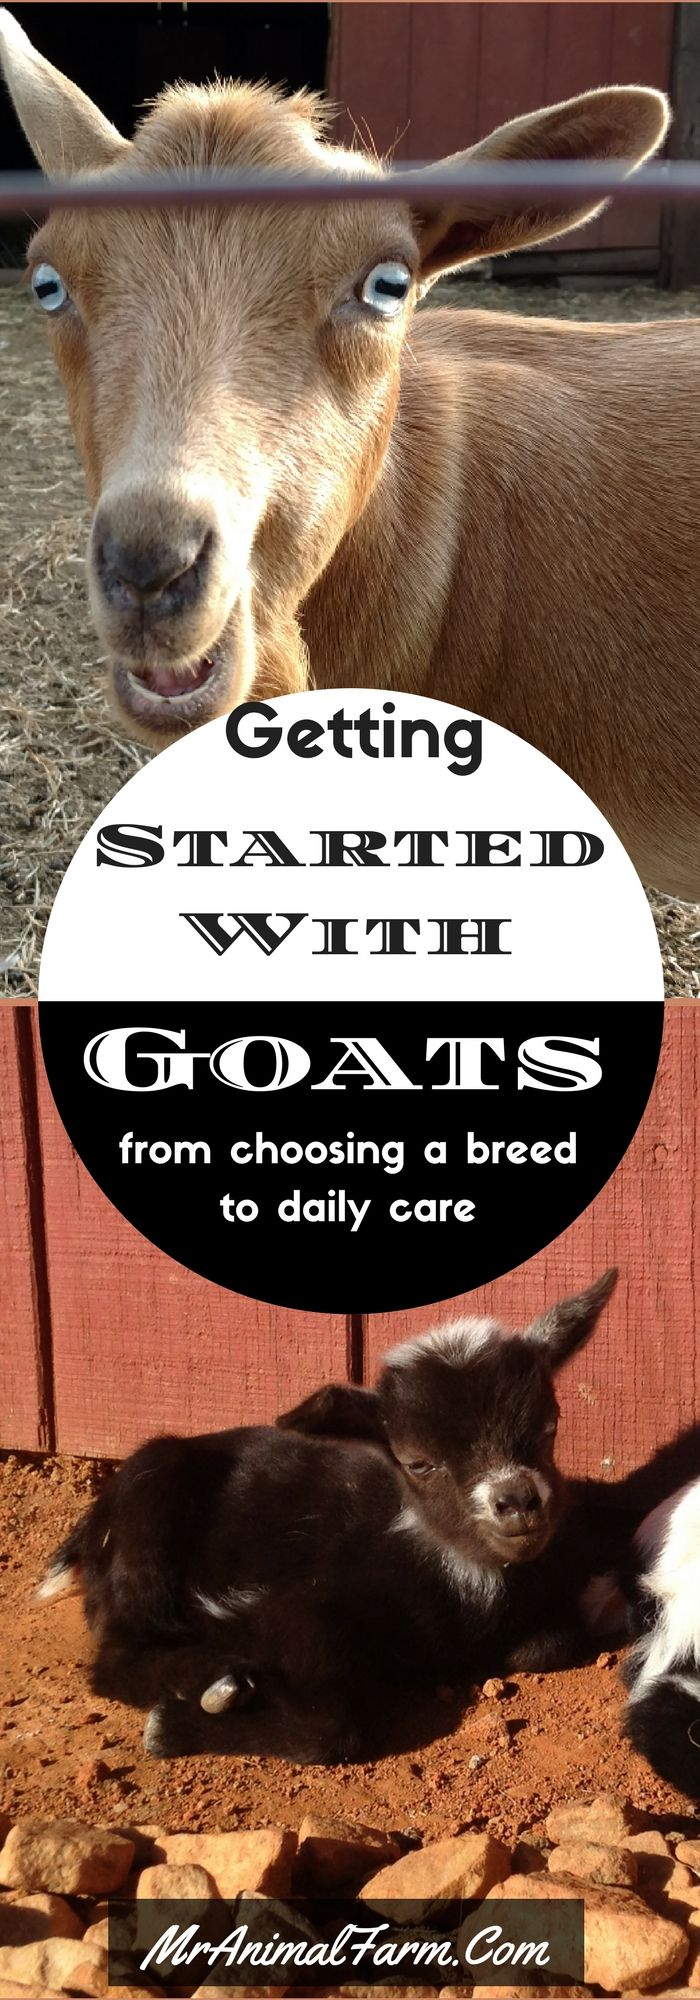 Wanna get started raising goats?  Find out how you can raise your own goats!